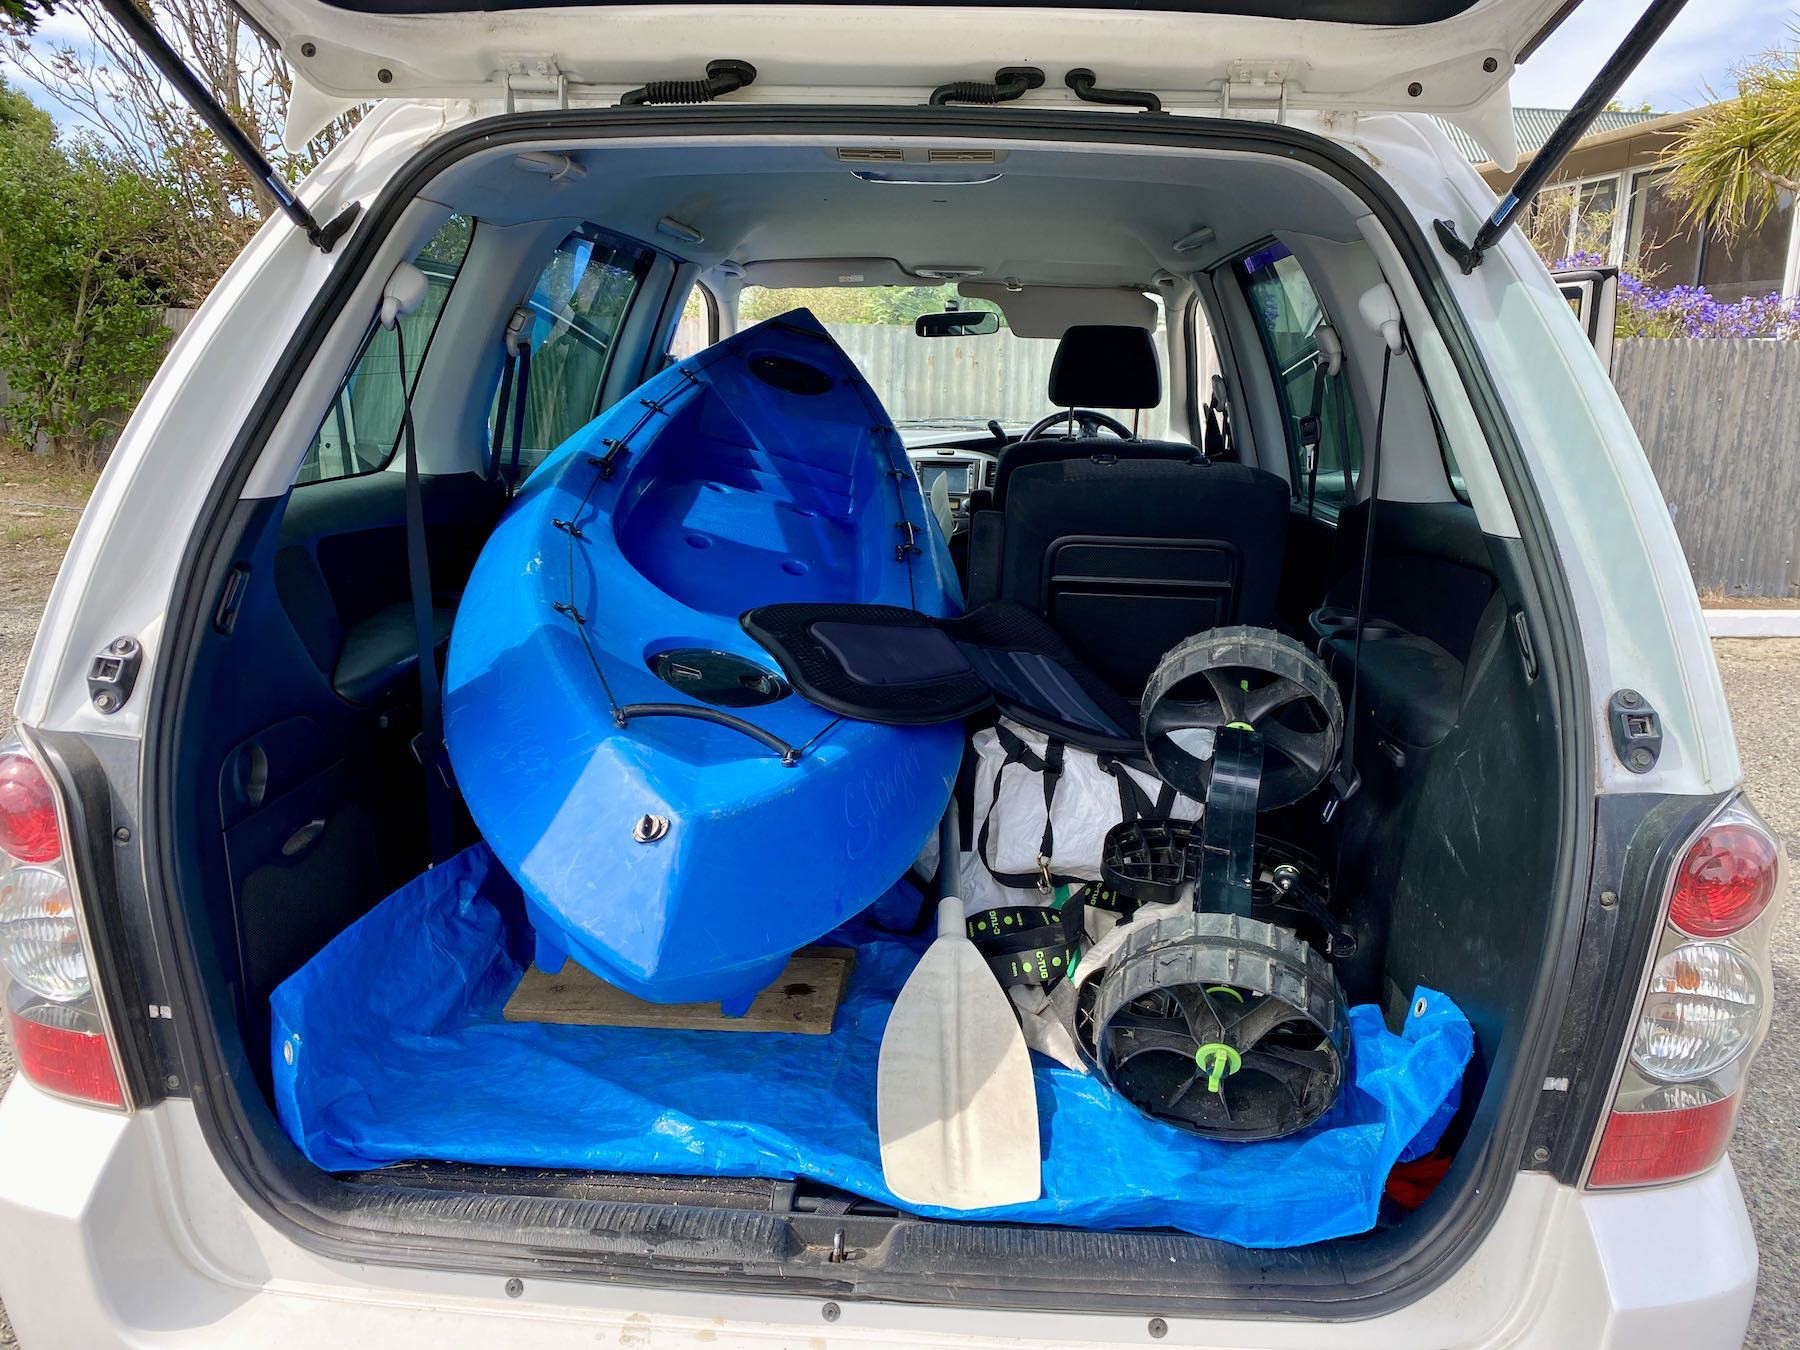 Kayak and gear in the back of my car.